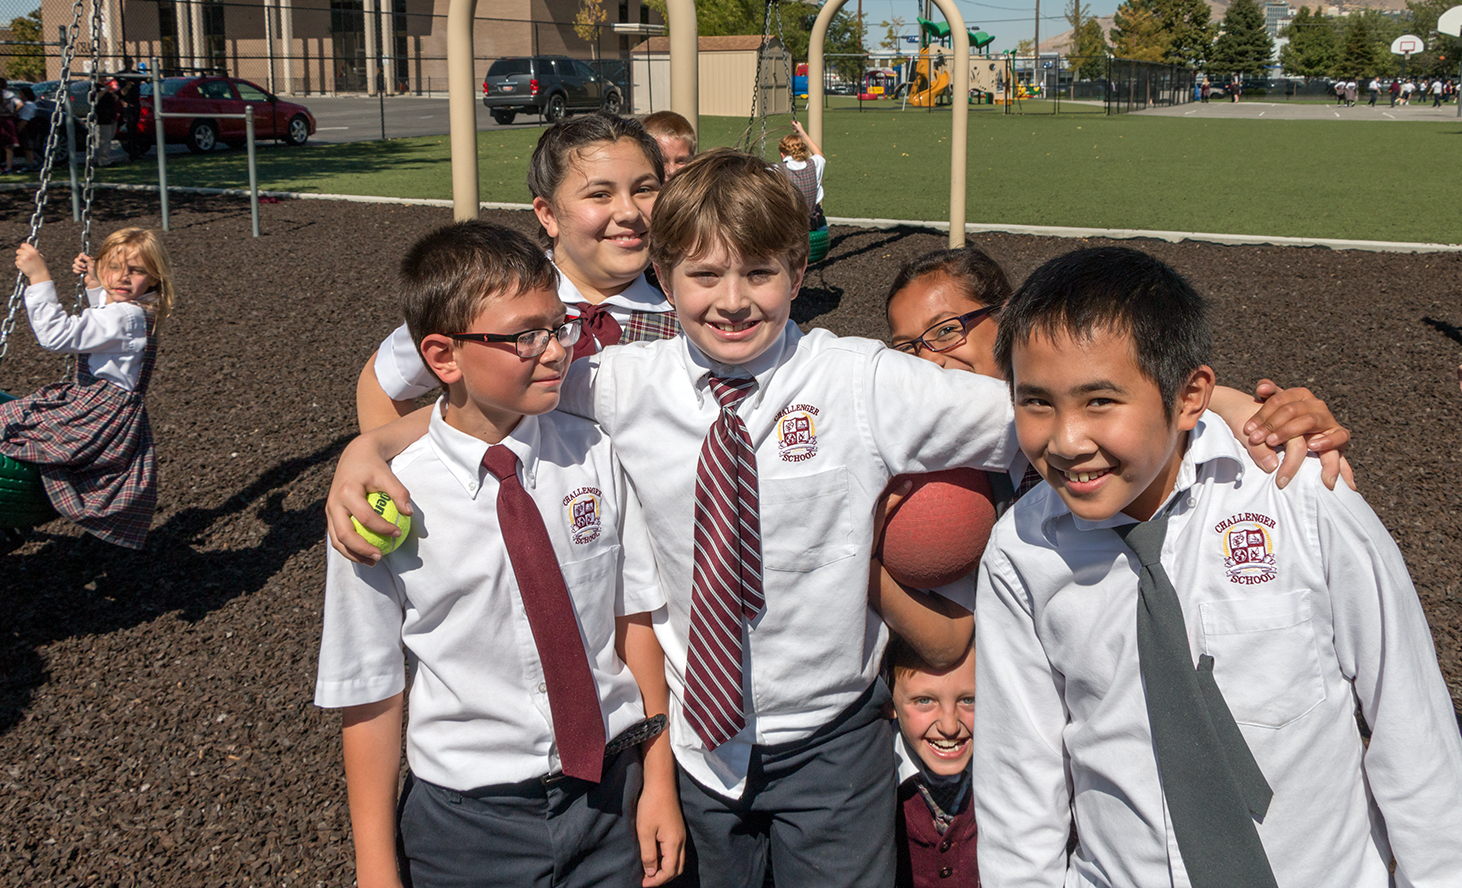 With easy freeway access for commuters and near to all the great downtown activities, Challenger's Salt Lake private school campus features safety gates and a security guard, a diverse student body, and a feeling of energy and fun. When they're in season, you can even catch a Salt Lake Bees game next door! Drop in and check out our well-maintained and clean campus and playground, see our impressive student work boards, and meet our friendly staff.